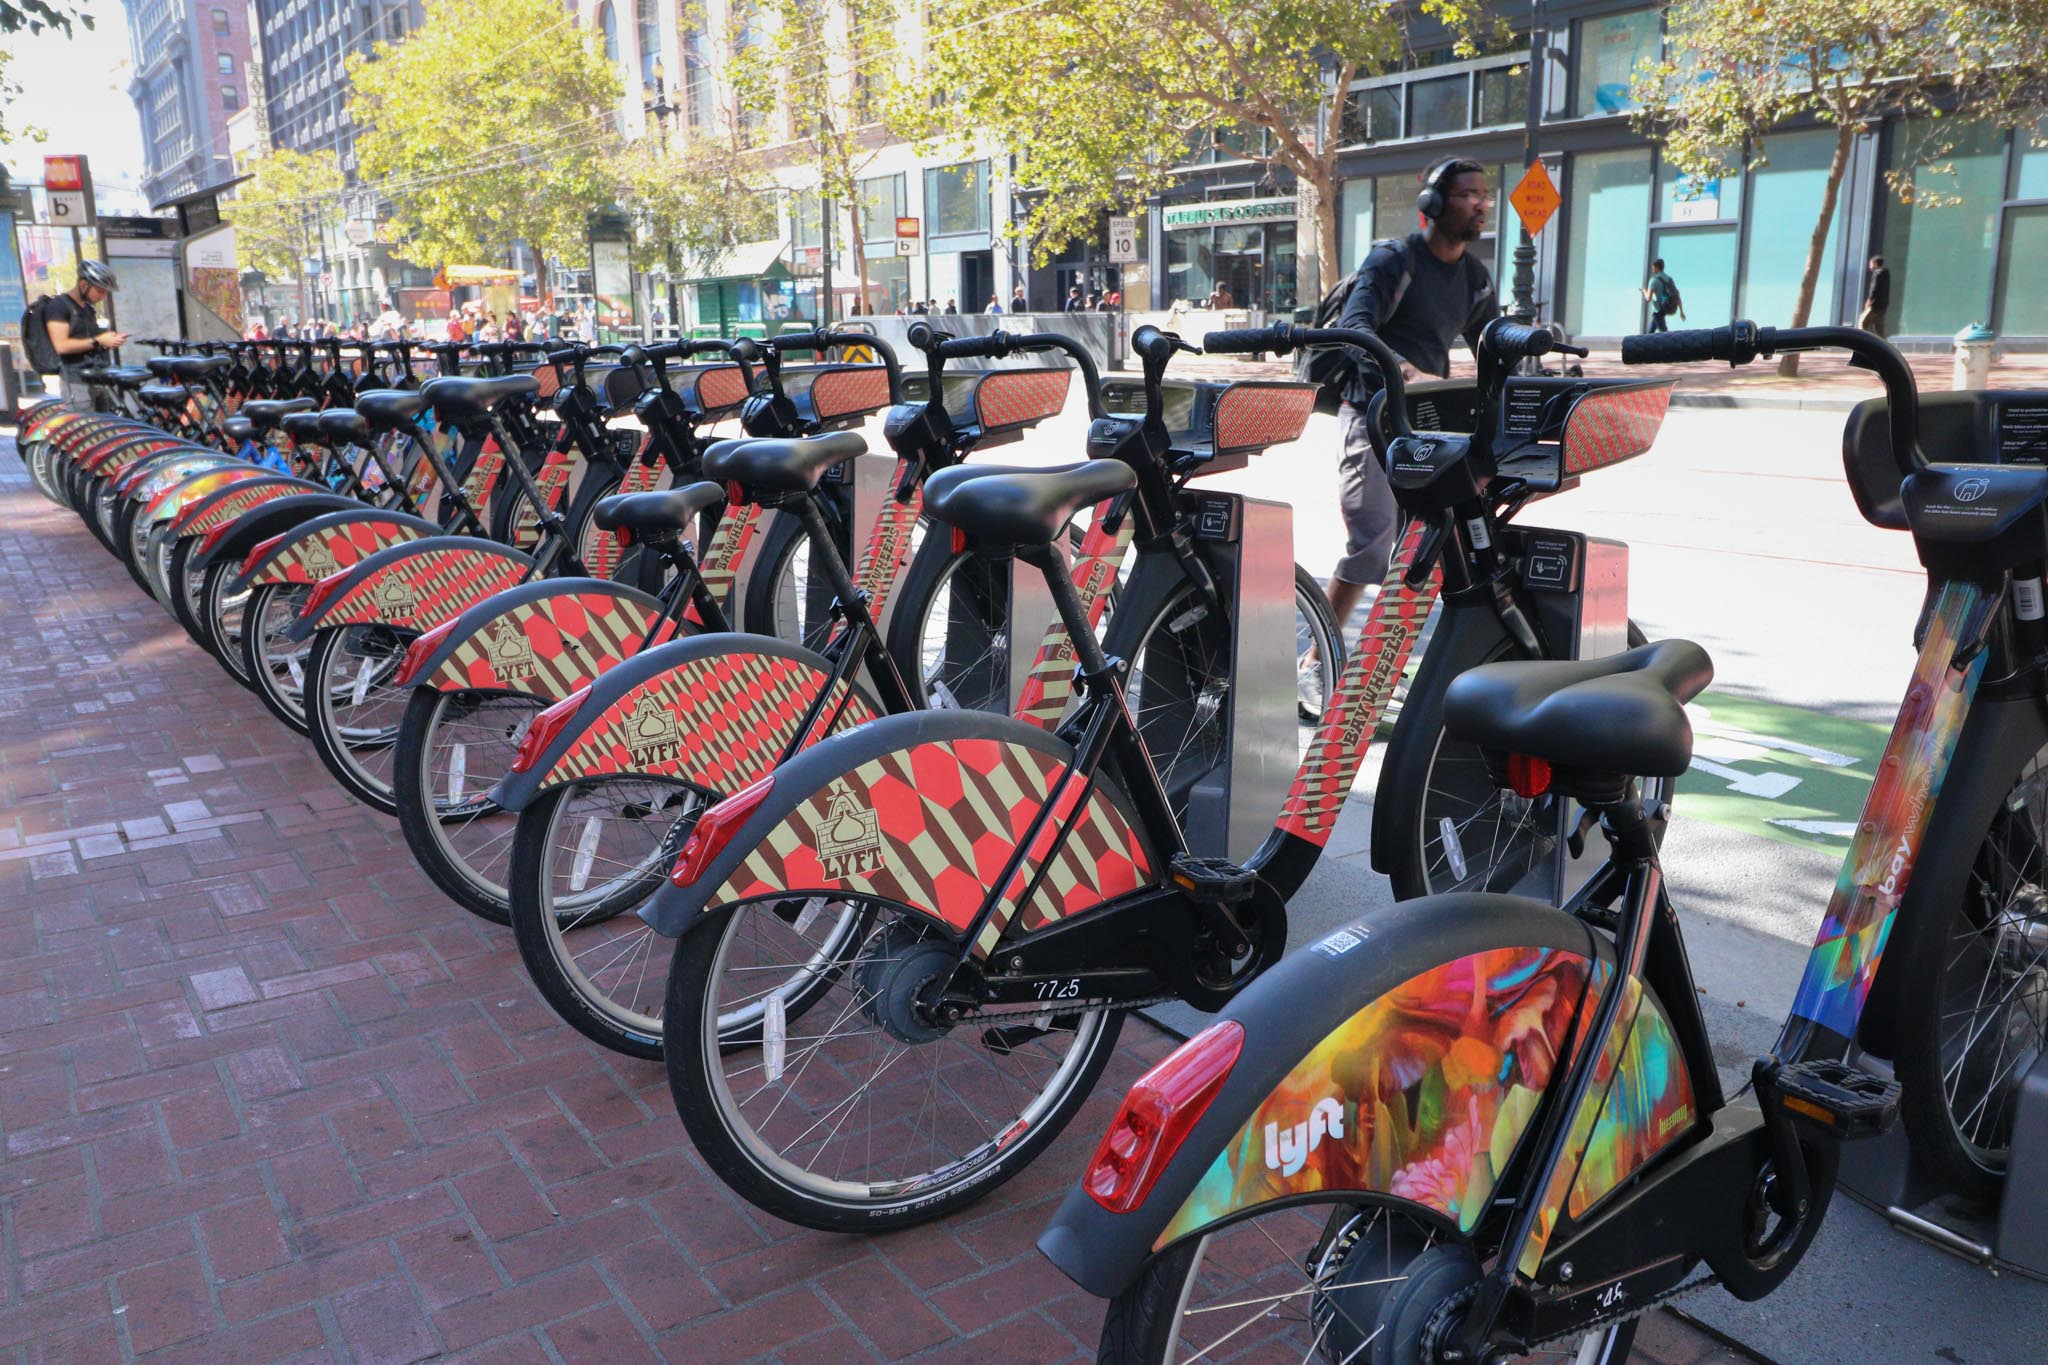 Urban mobility, a fast growing segment of smart city infrastructure